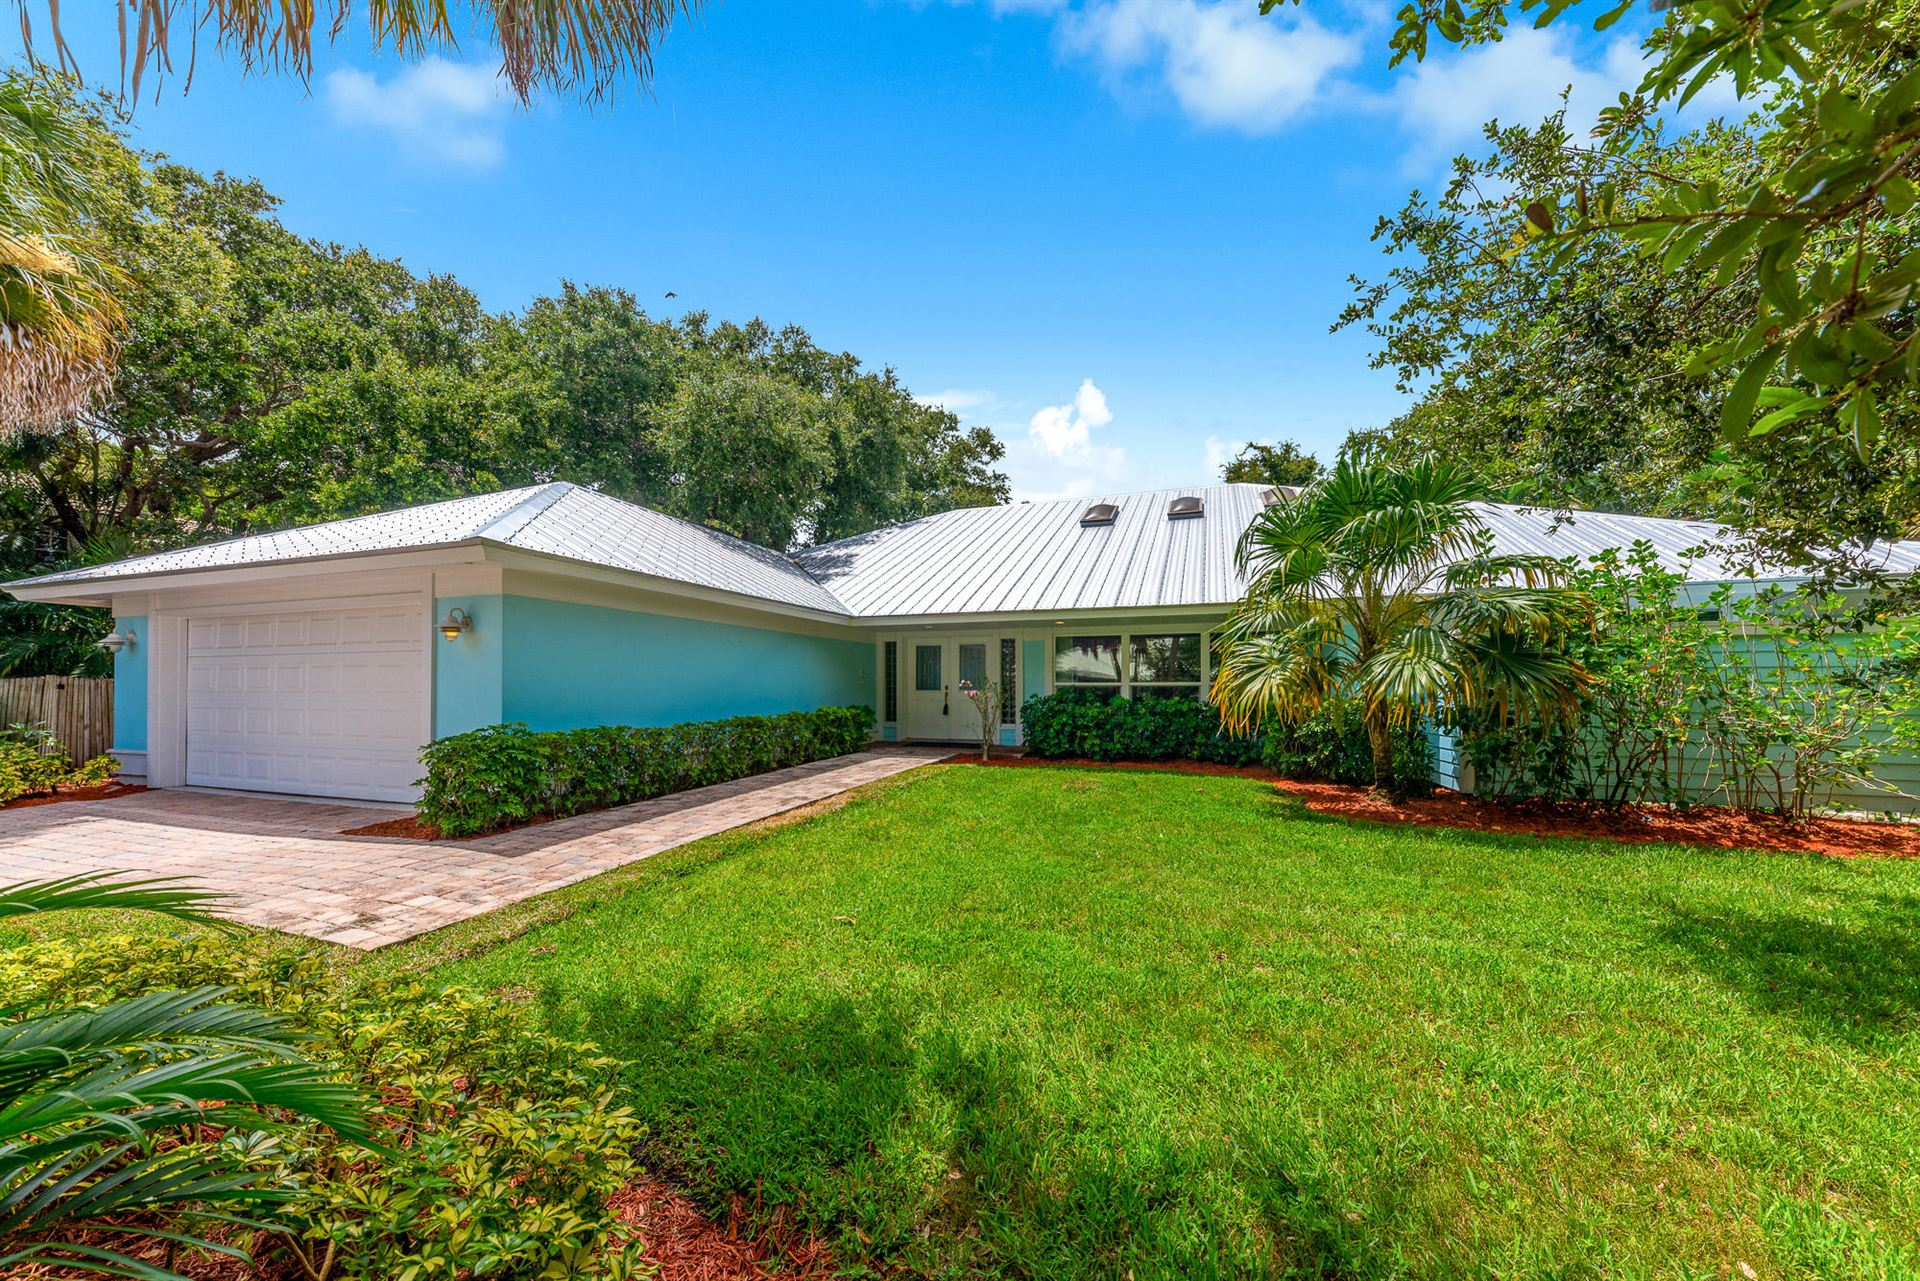 2 Heritage Way, Sewalls Point, FL 34996 - #: RX-10637625